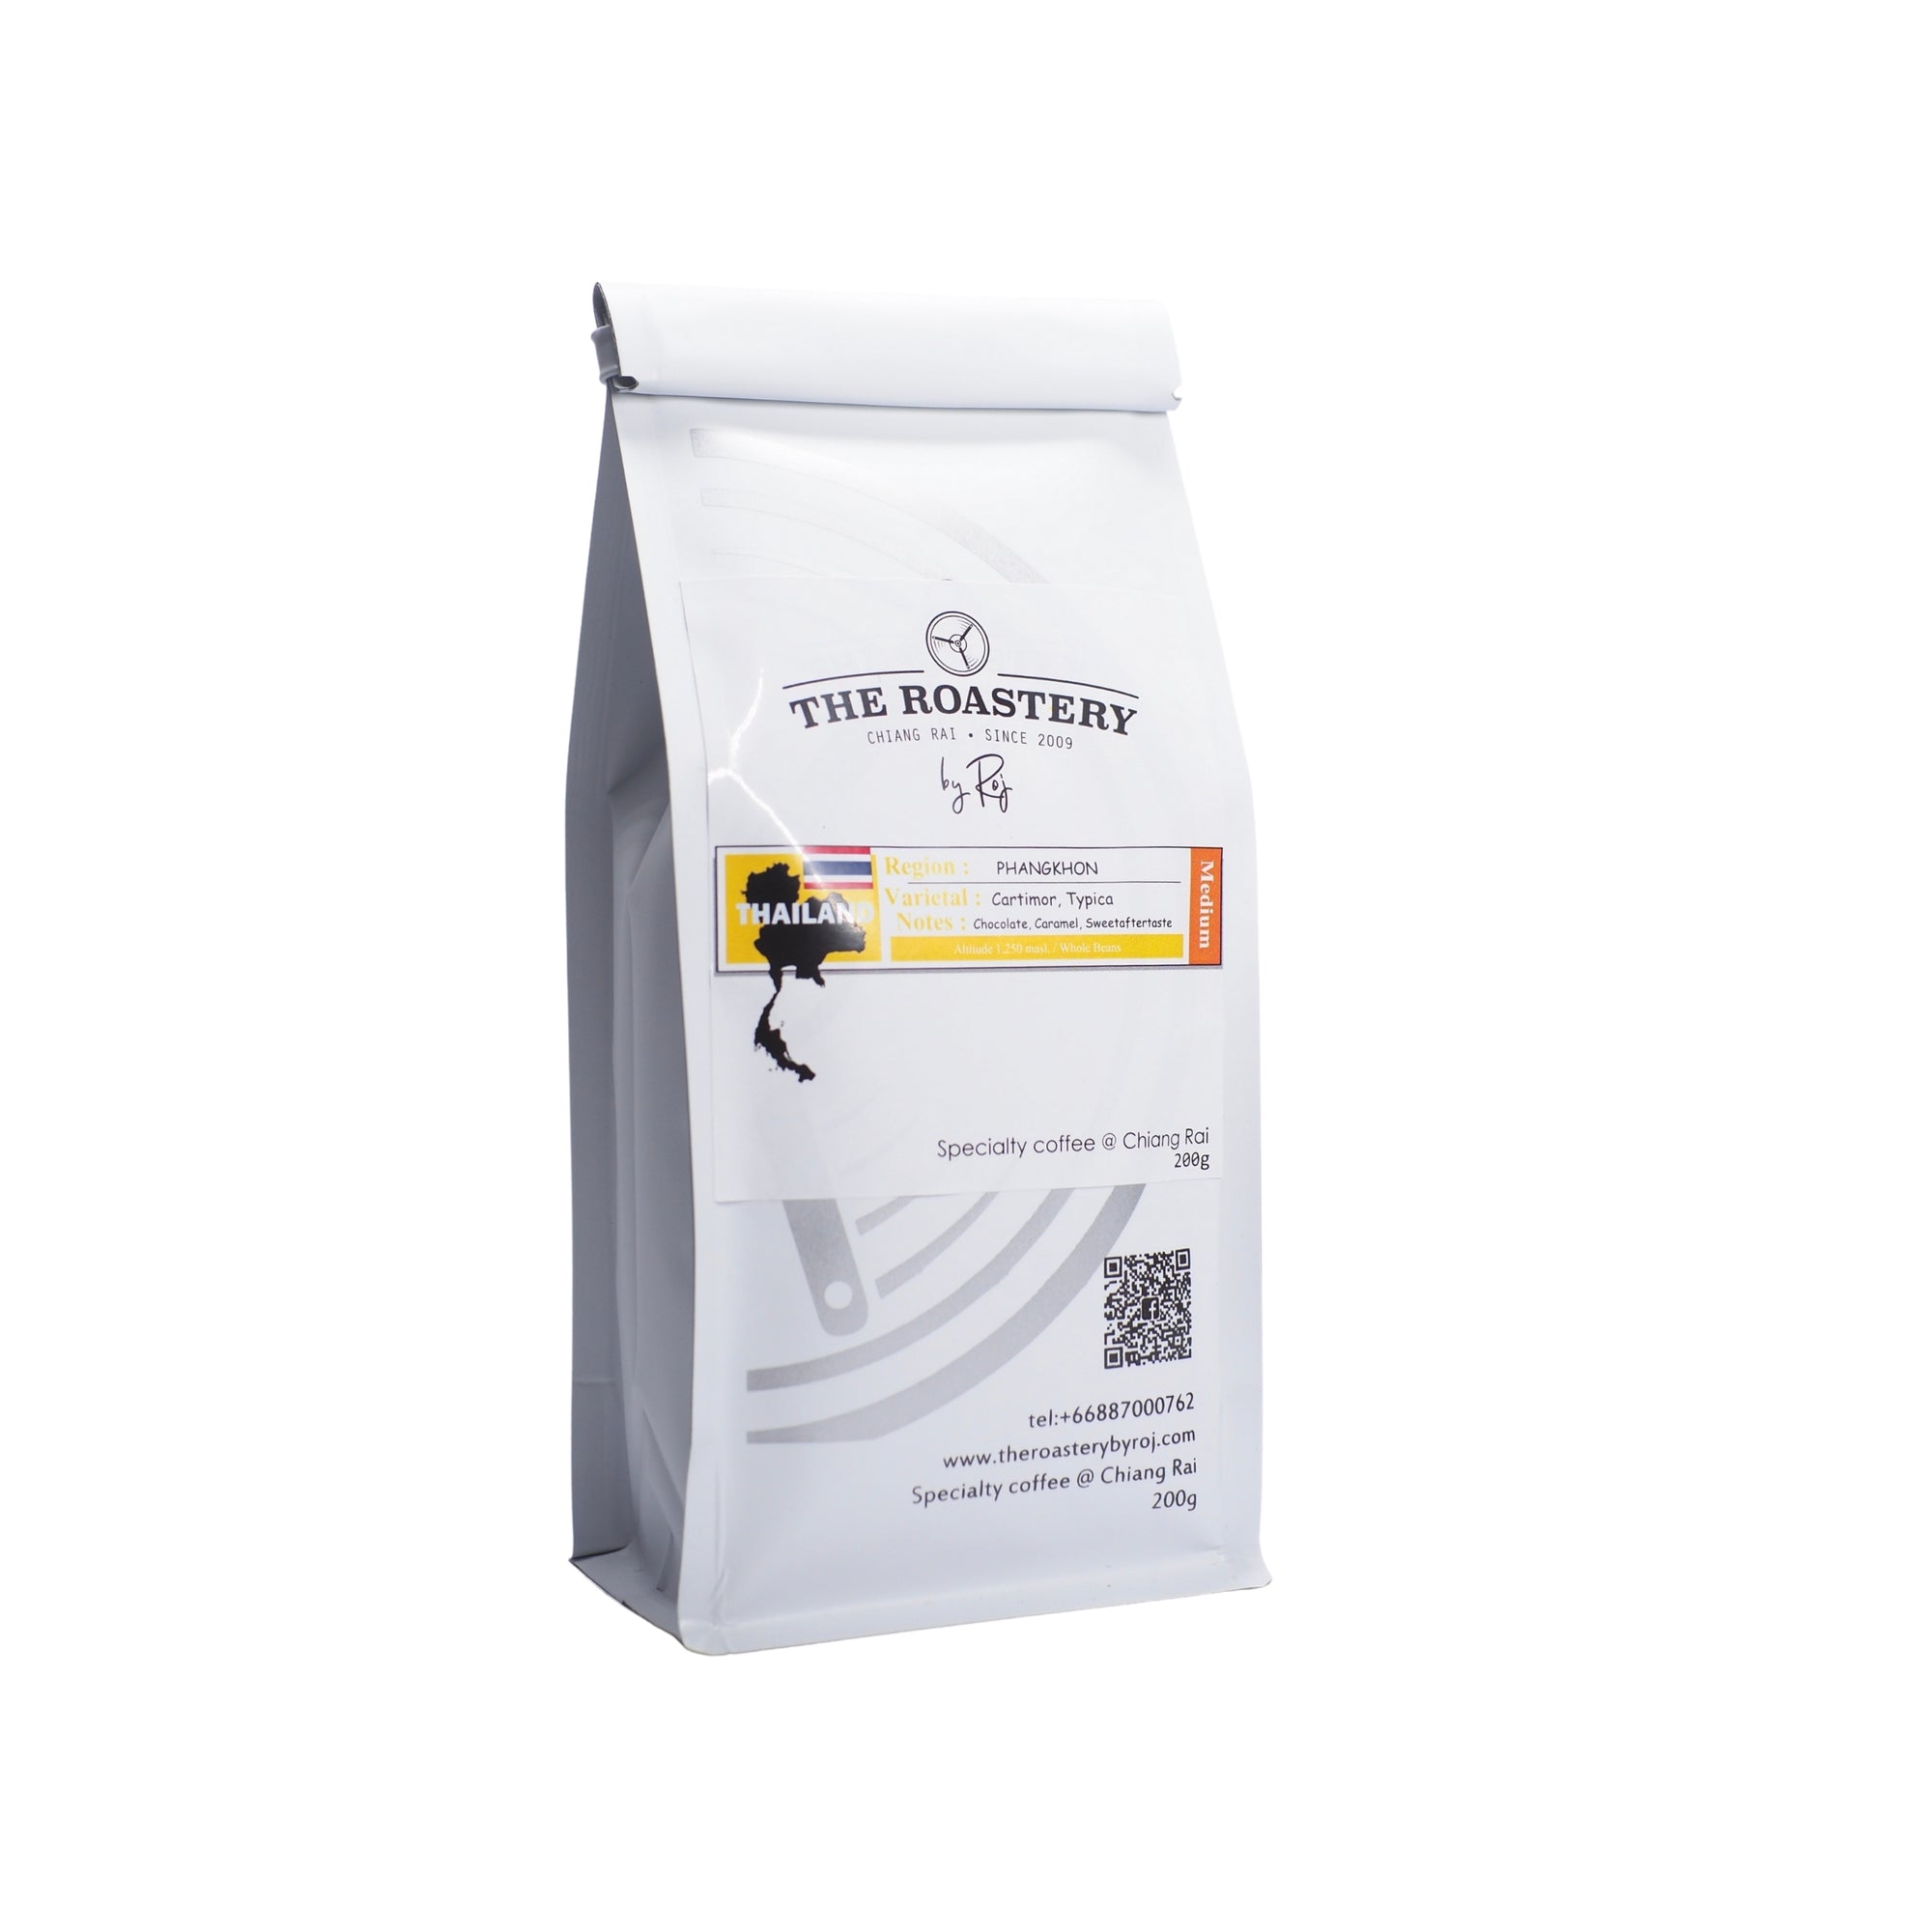 Chiangrai Pangkhon washed Medium Roast 200g